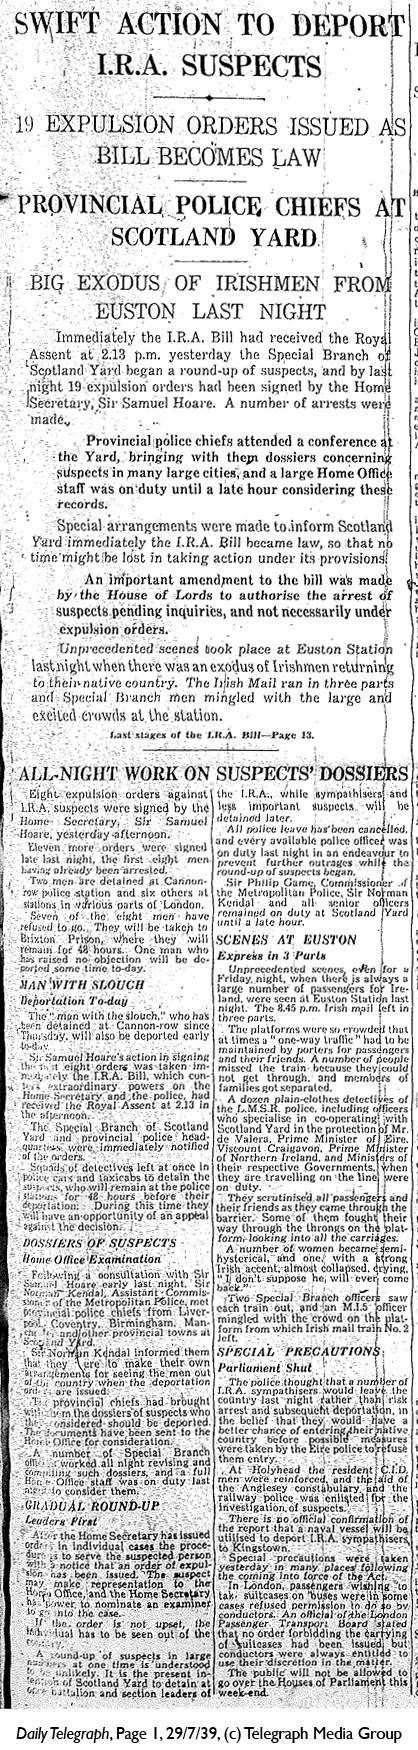 Daily Telegraph 29-7-39 Page 1-2